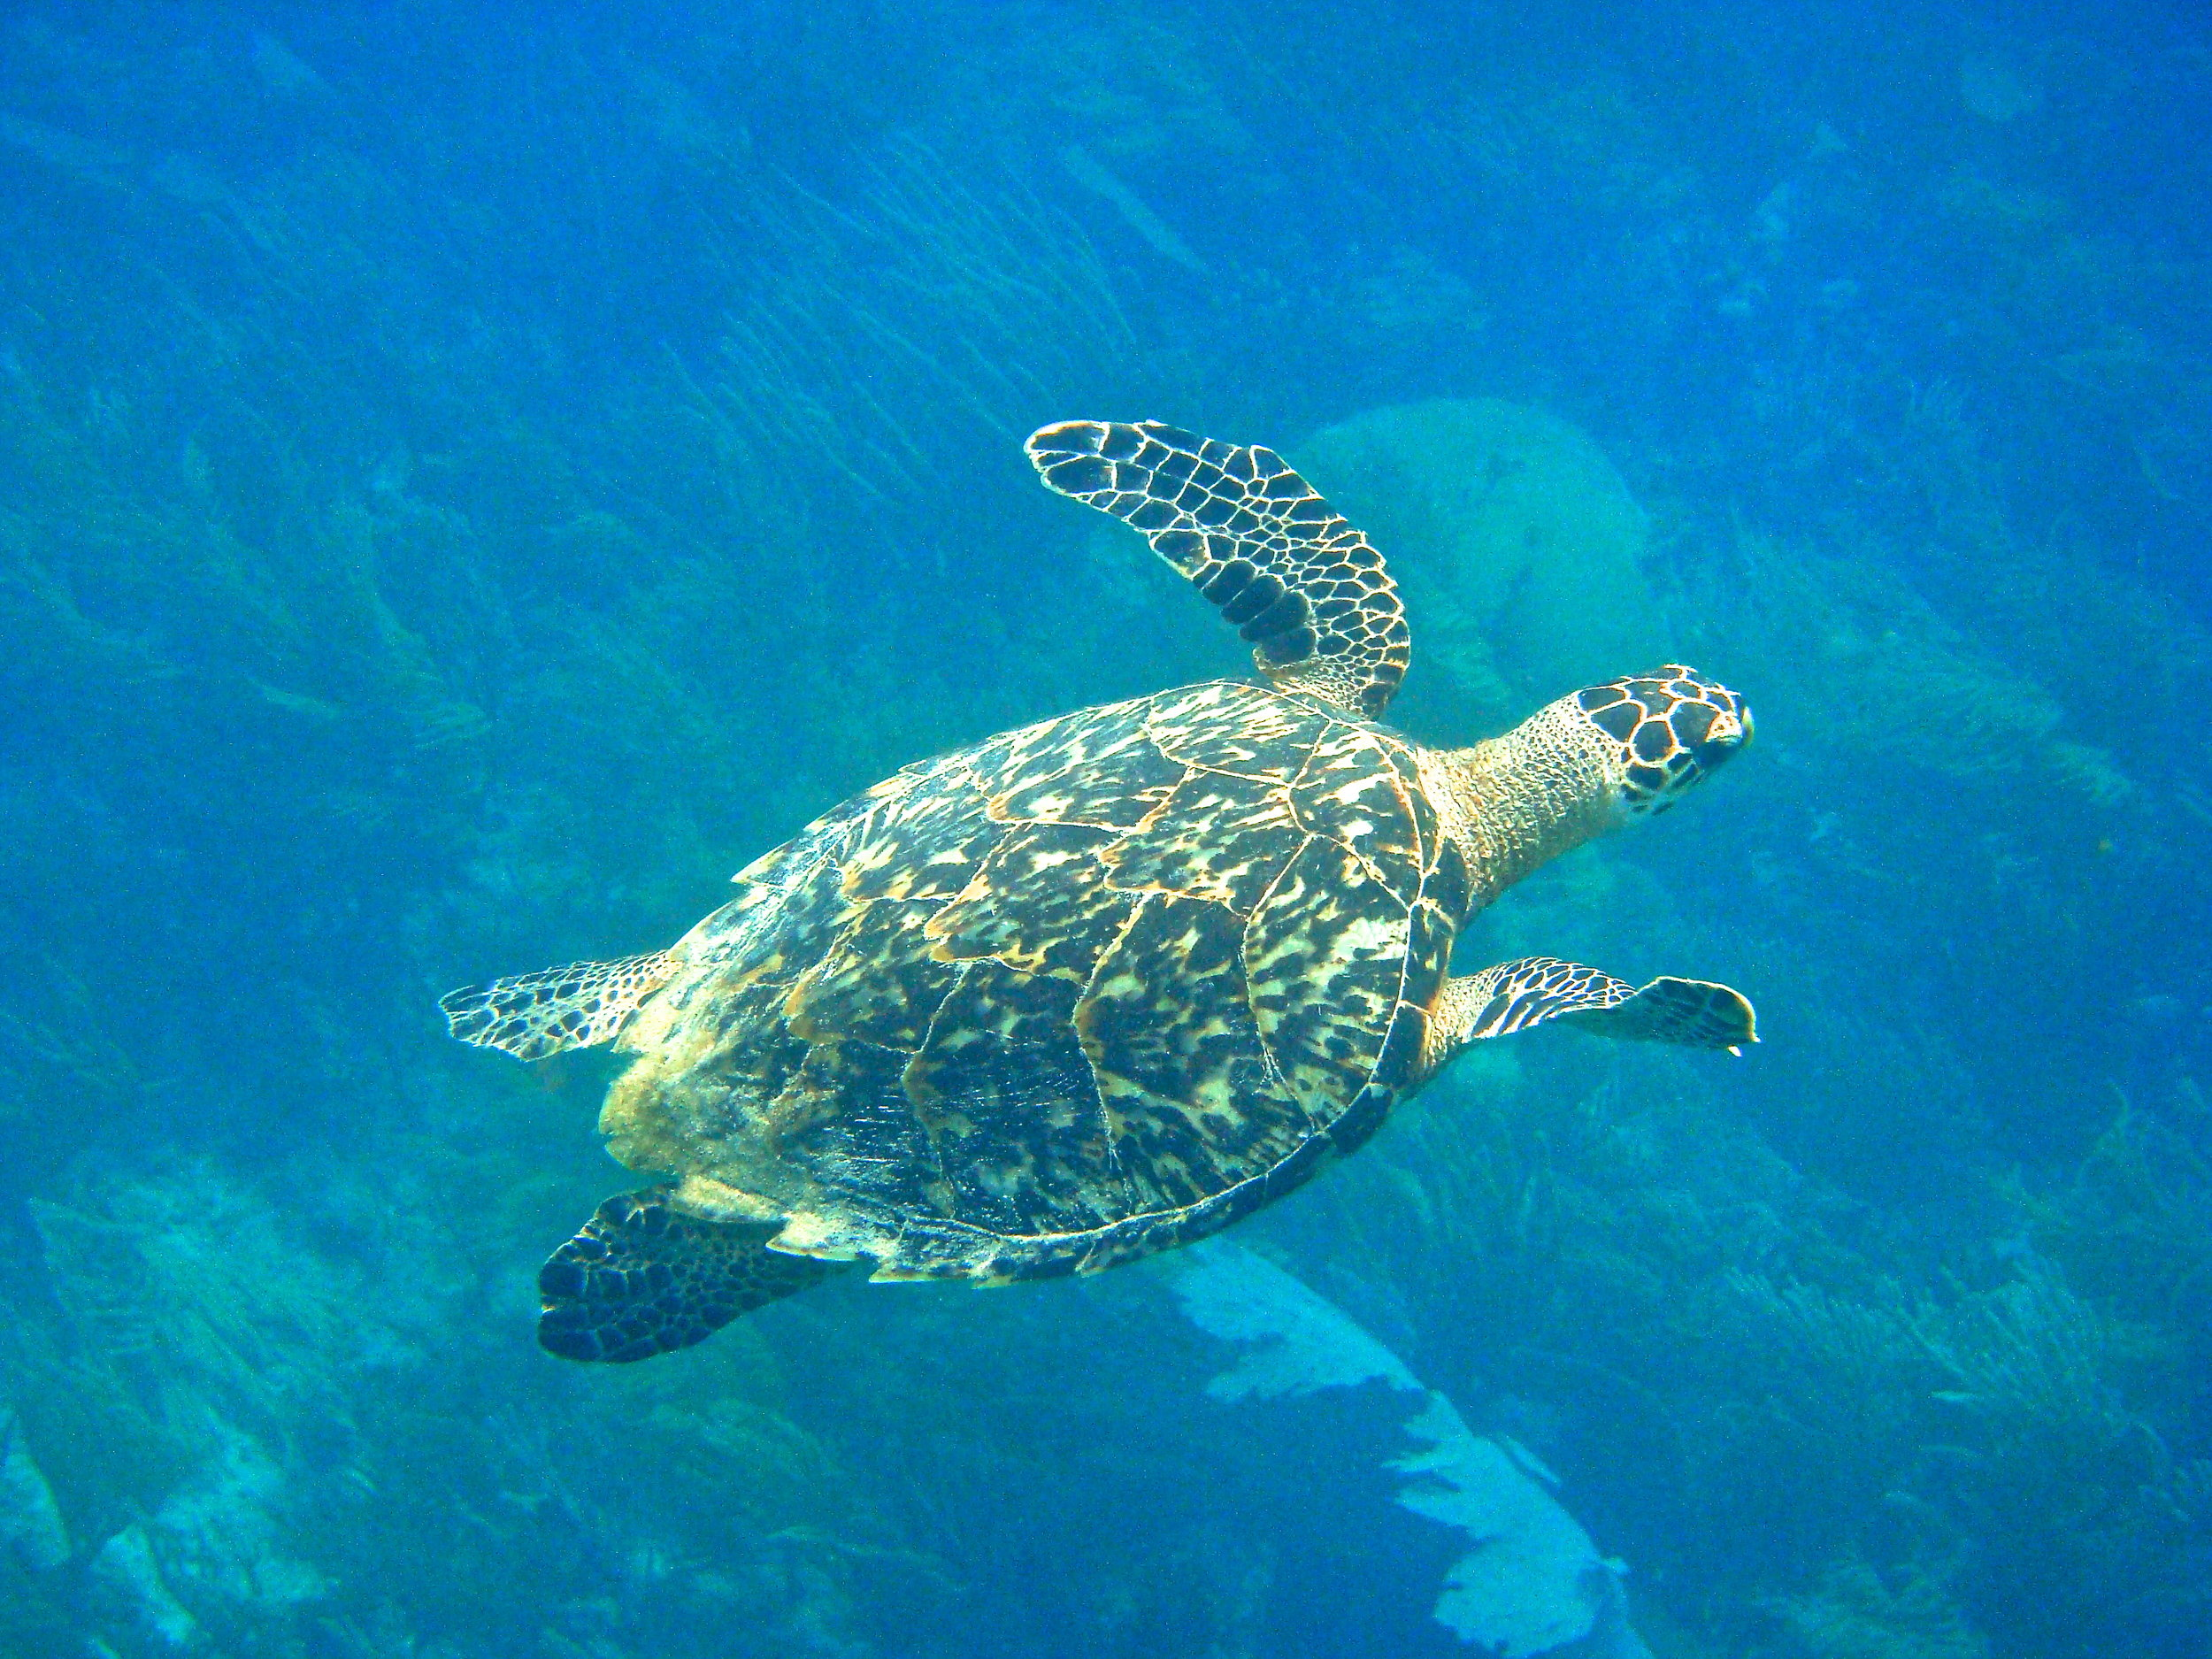 We will have a third day of turtle monitoring. After dinner, we'll have an opportunity to swim in bioluminesence.